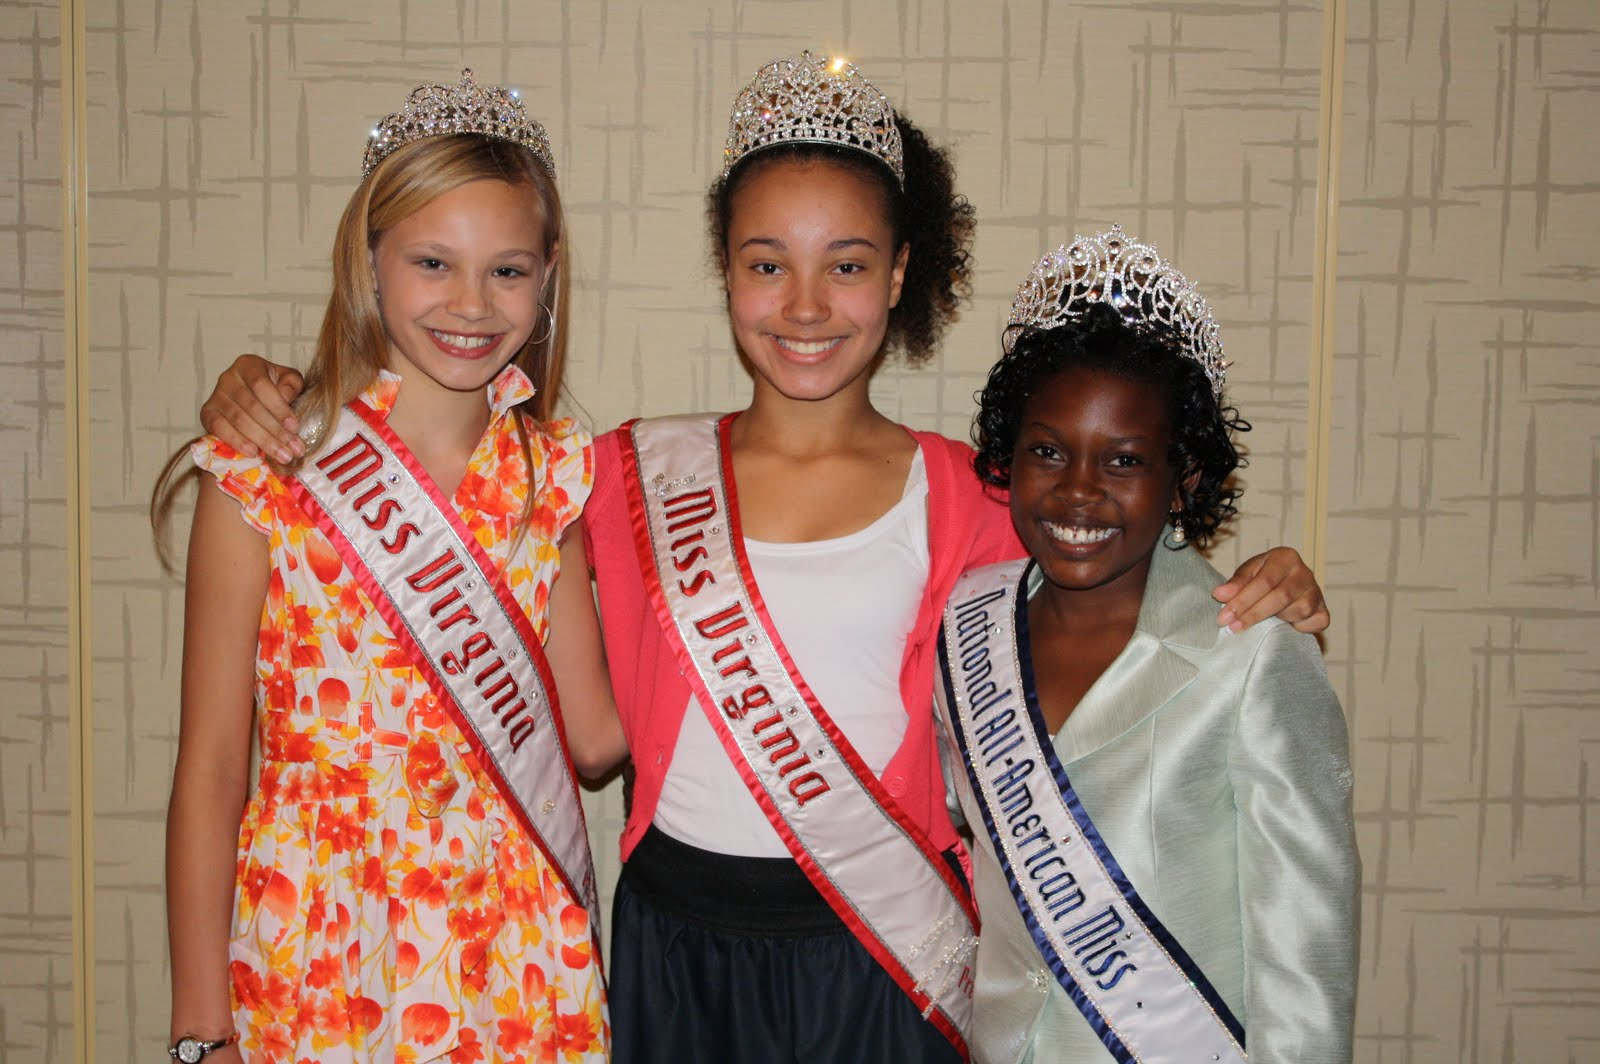 Pageants & Pearls: June 2013